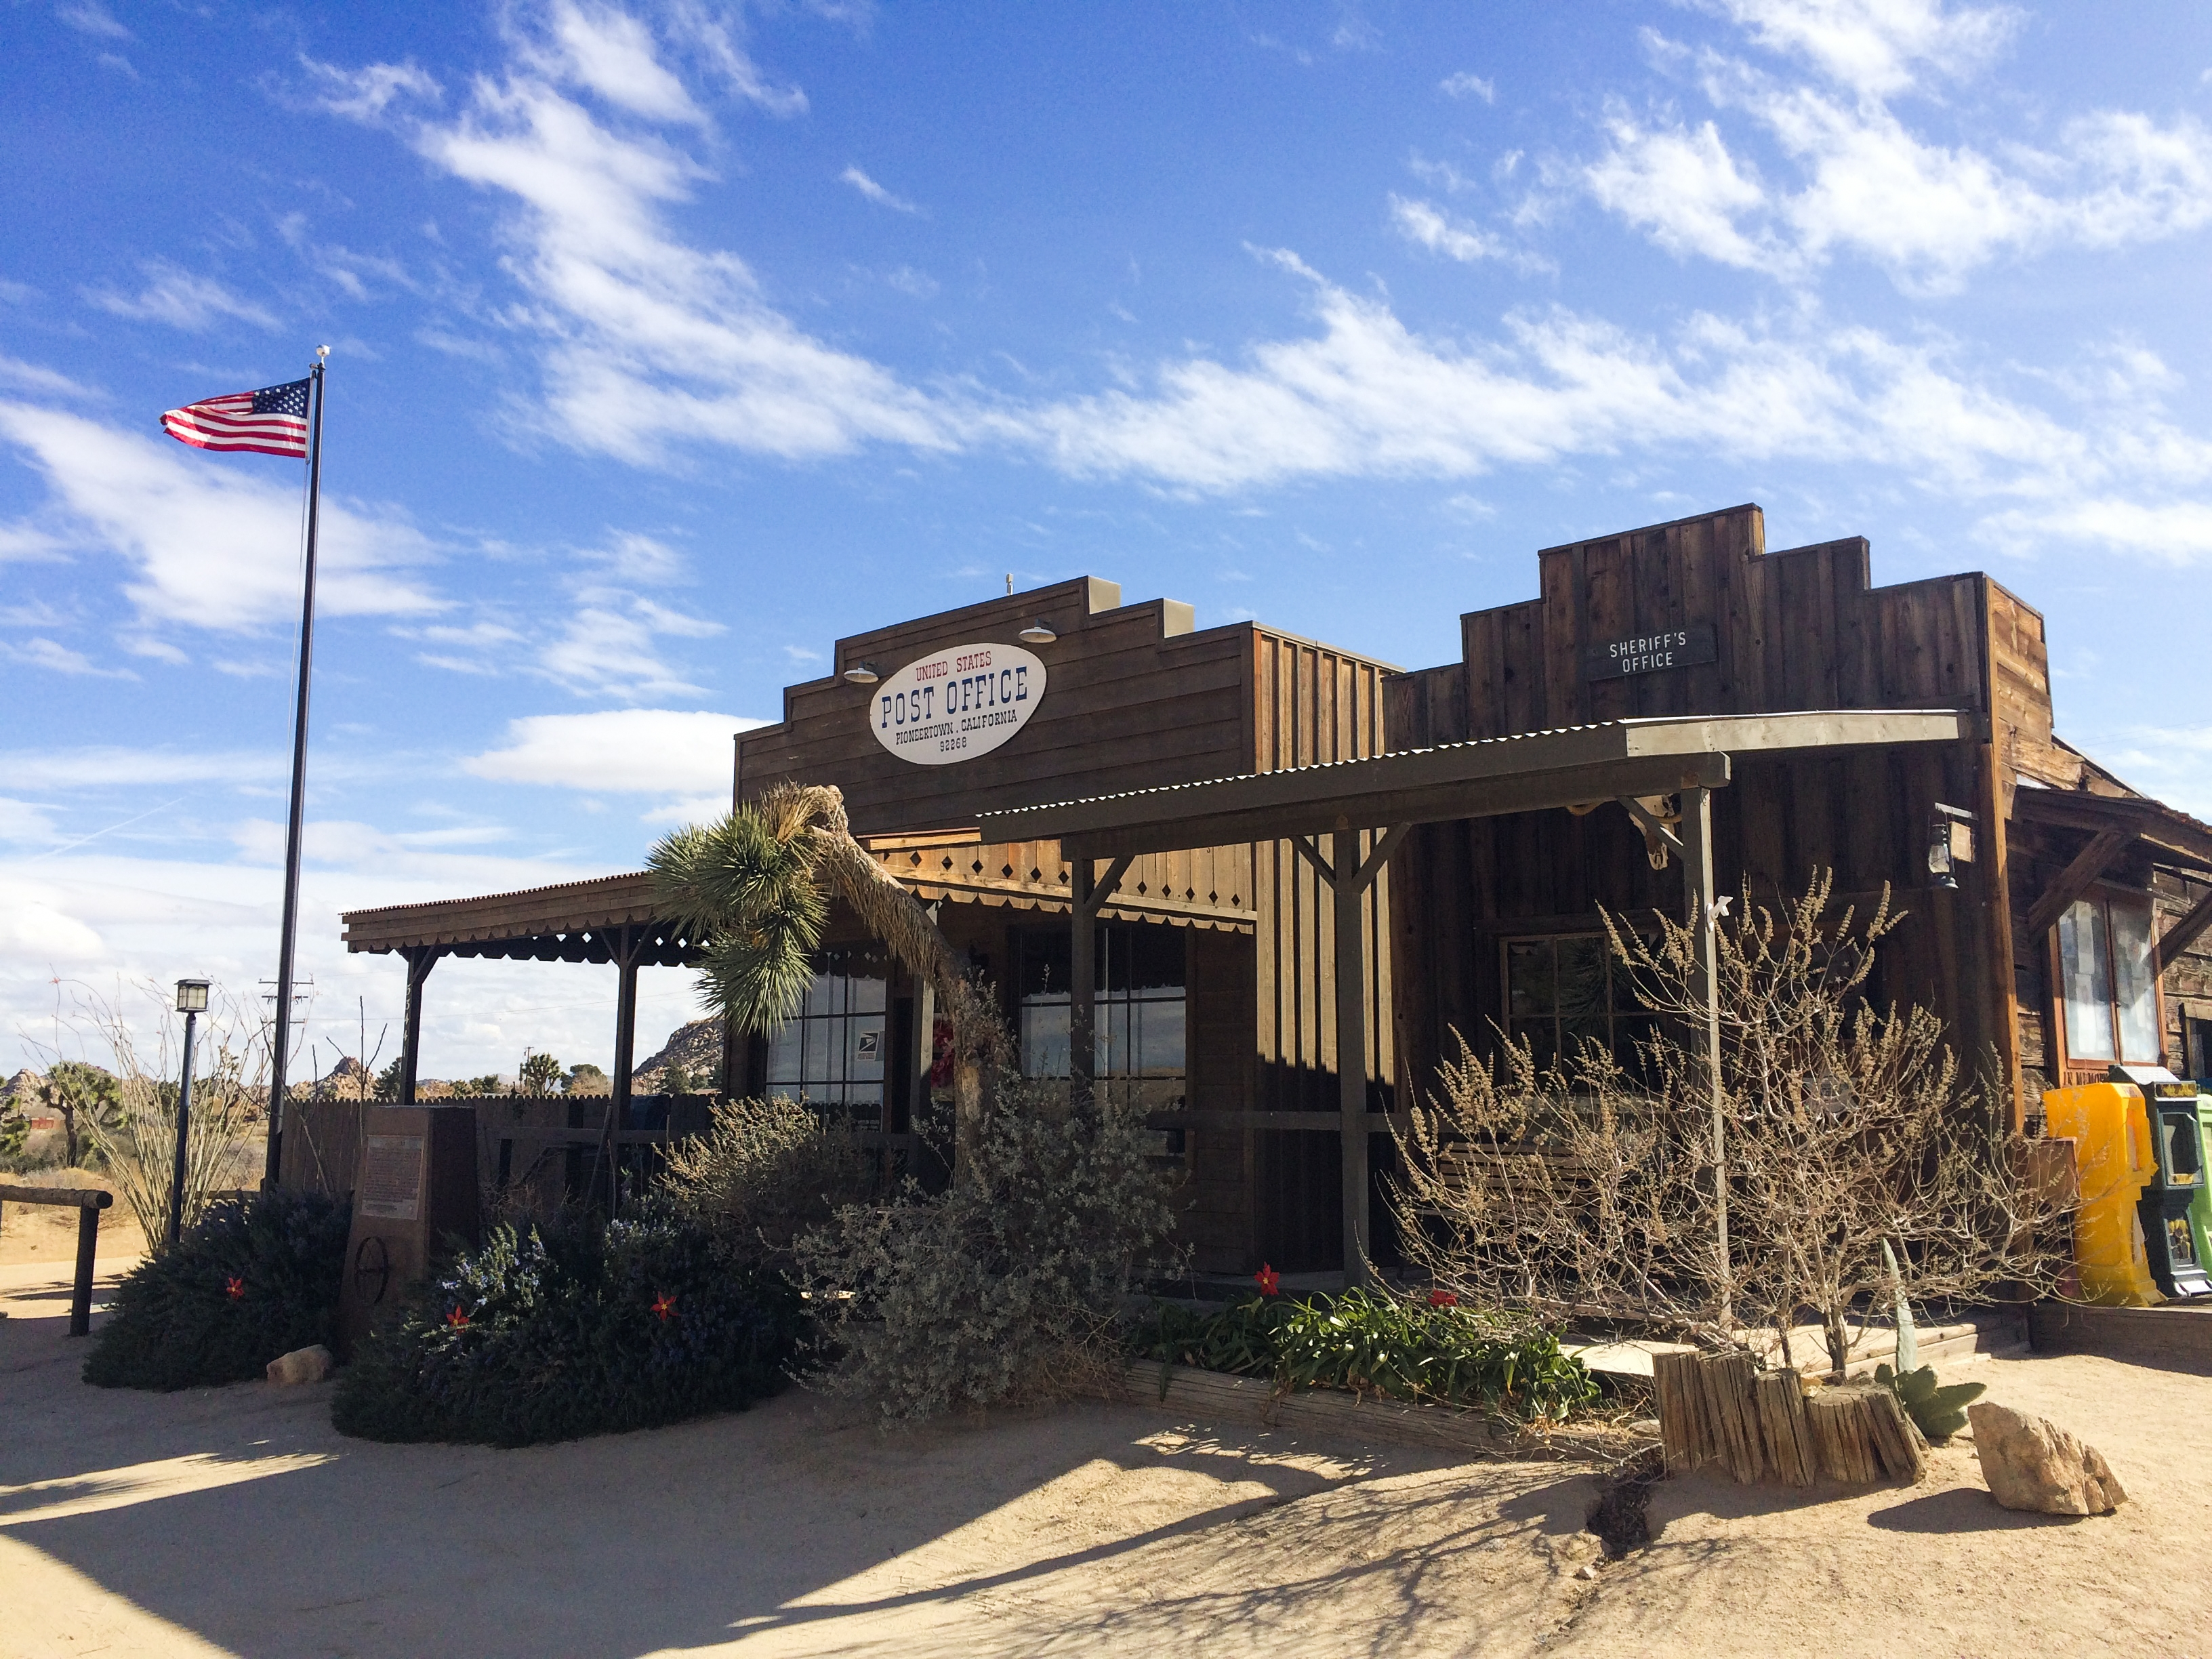 Visiting Pioneertown from Palm Springs, California